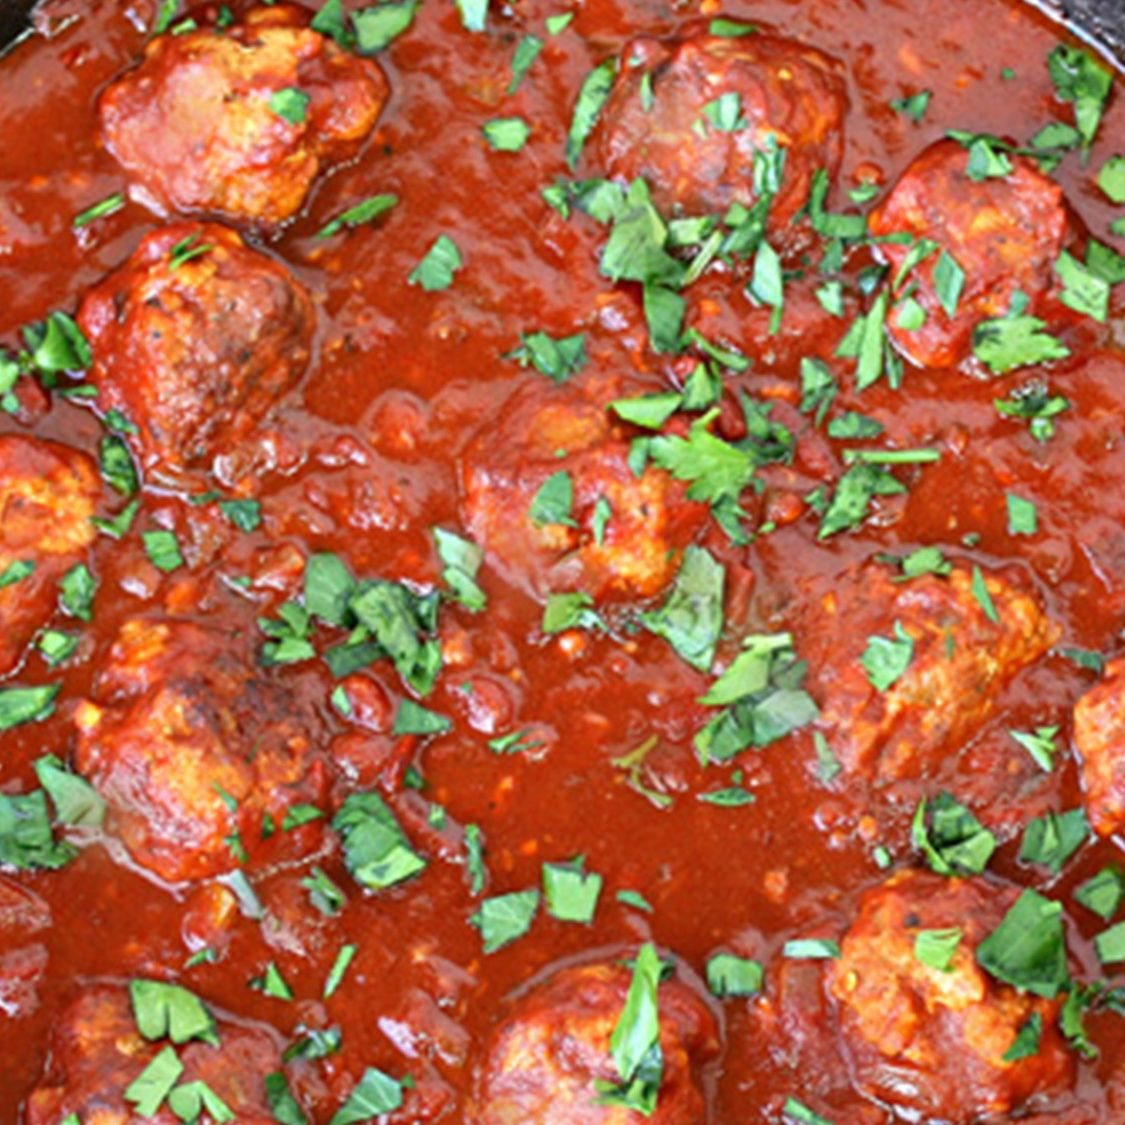 meatballs_in_fireroasted_barbq_tomato_sauce.jpg